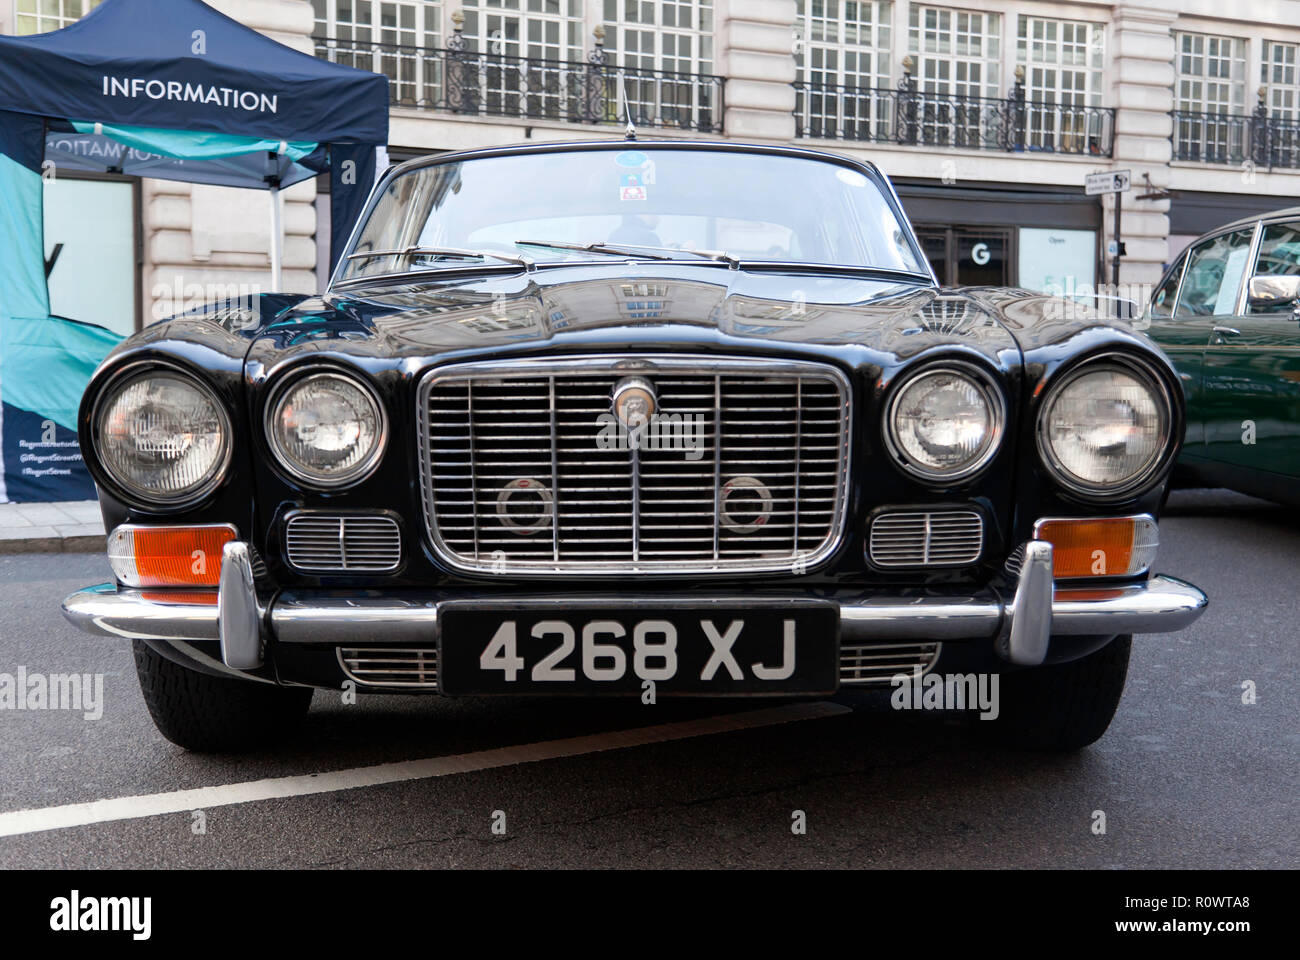 Front view of a 1970,  Black Jaguar XJ on display at the  Regents Street Motor Show 2018 Stock Photo